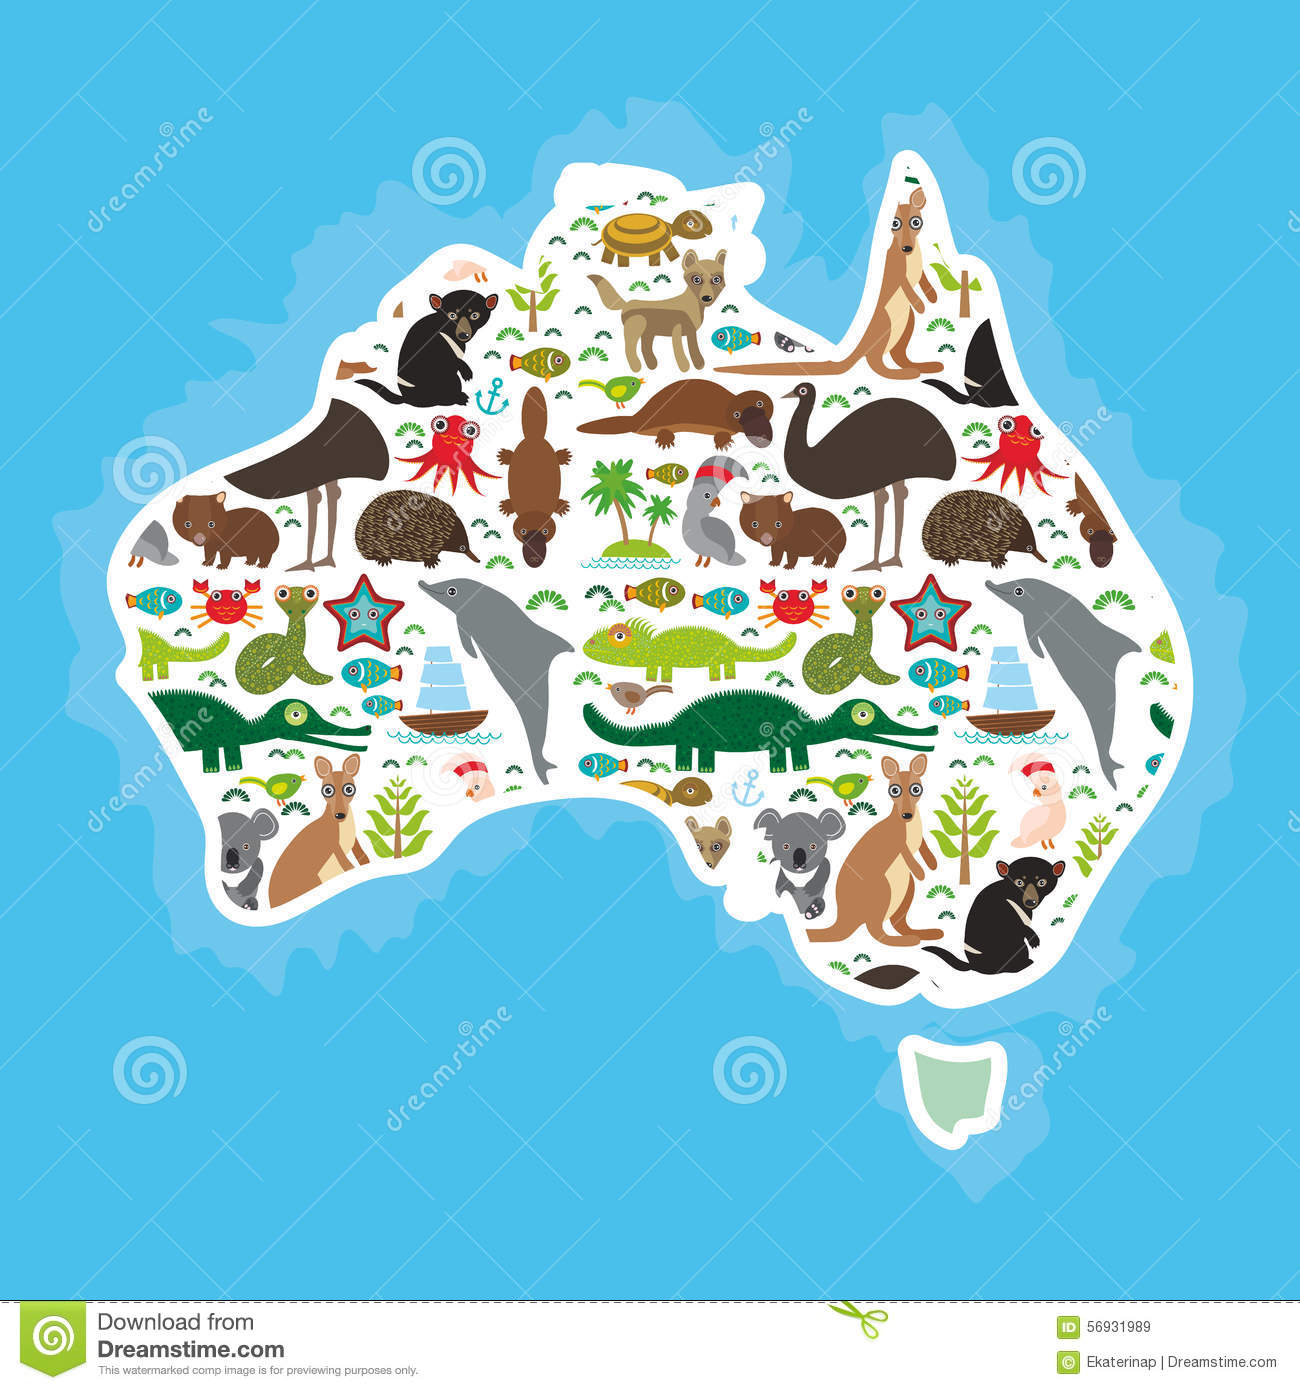 platypus stock illustrations u2013 448 platypus stock illustrations